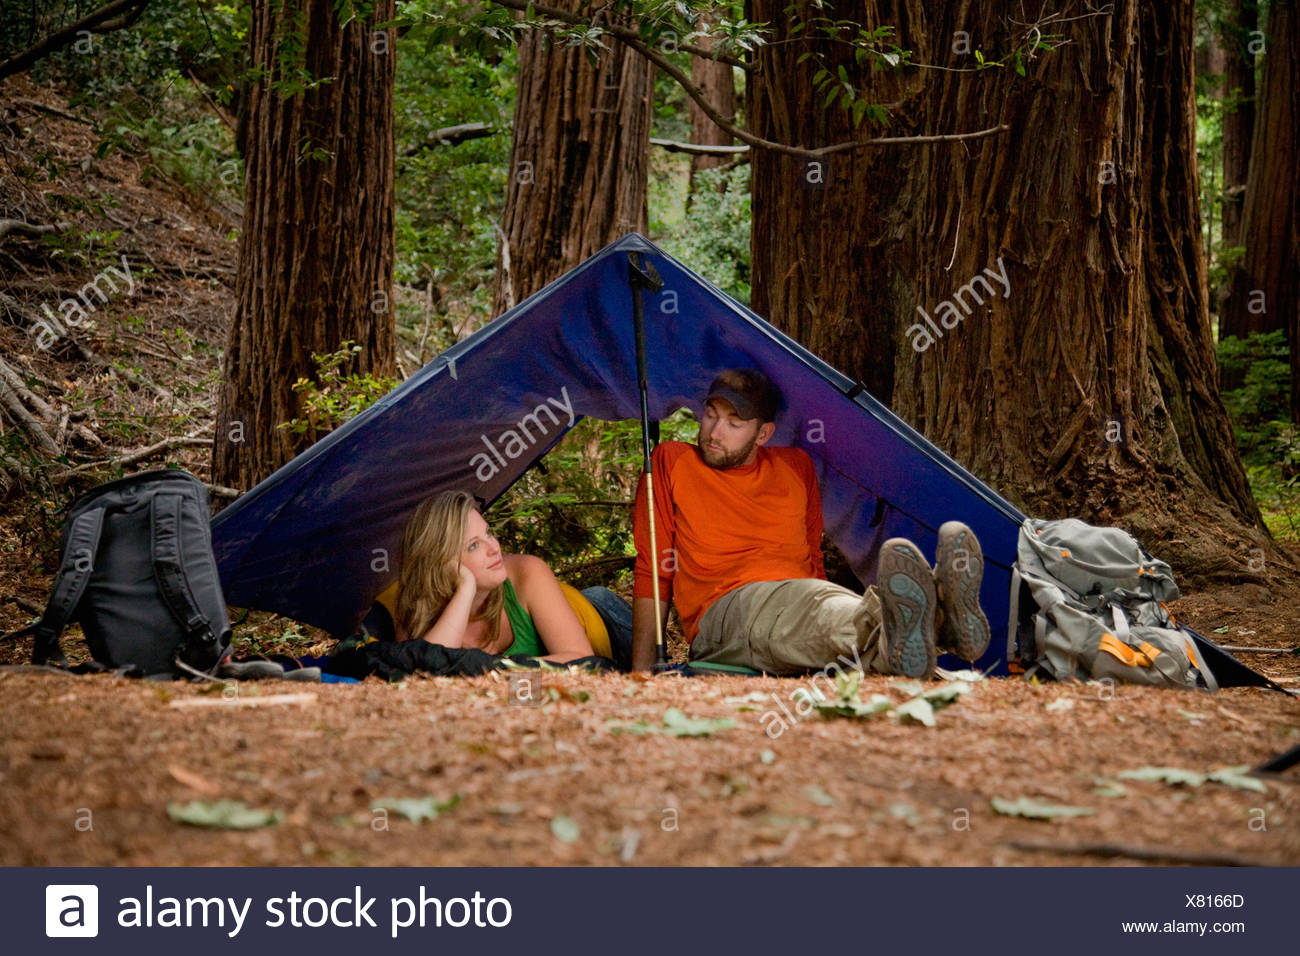 A young couple camping in the redwood forests of Big Sur. - Stock Image